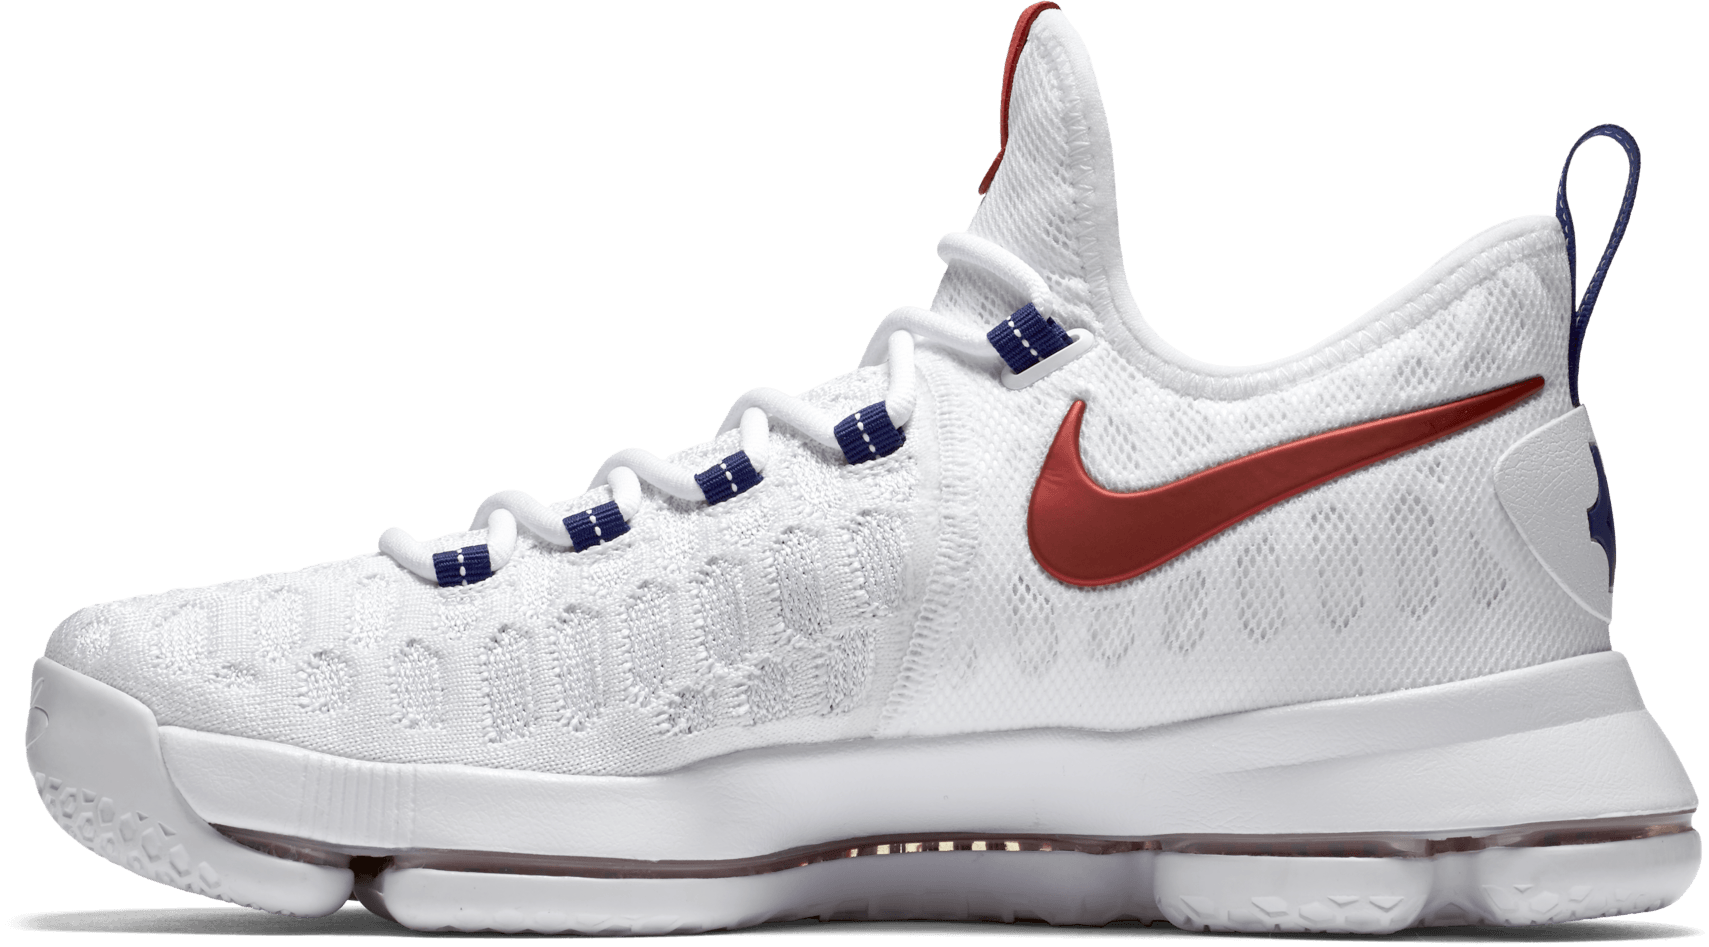 Nike Zoom KD 9 Performance Review